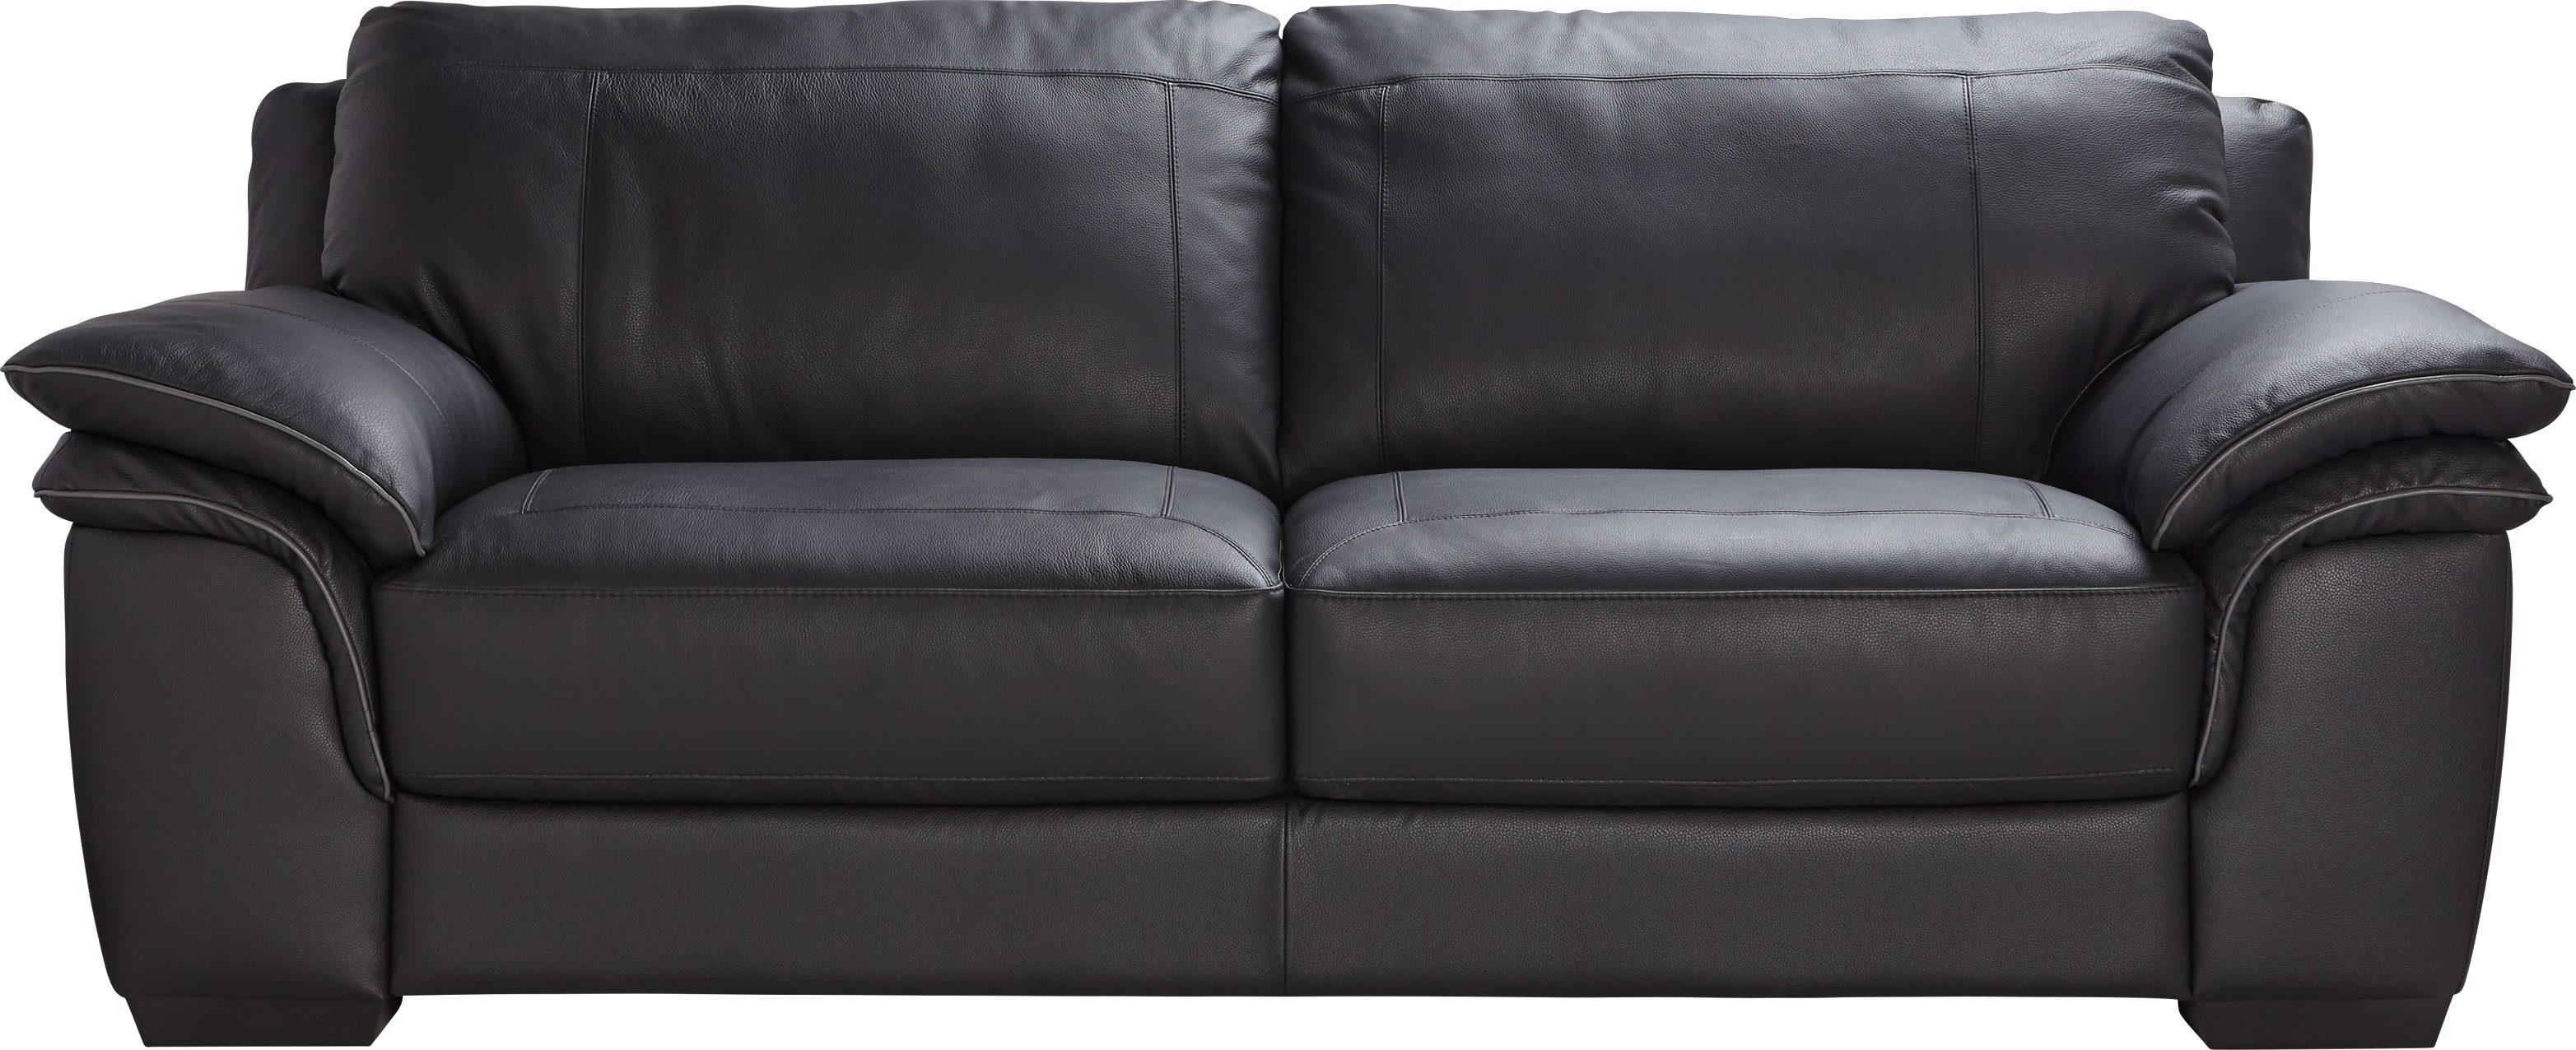 Cindy Crawford Home Grand Palazzo Black Leather Sofa - Leather Sofas (Black)